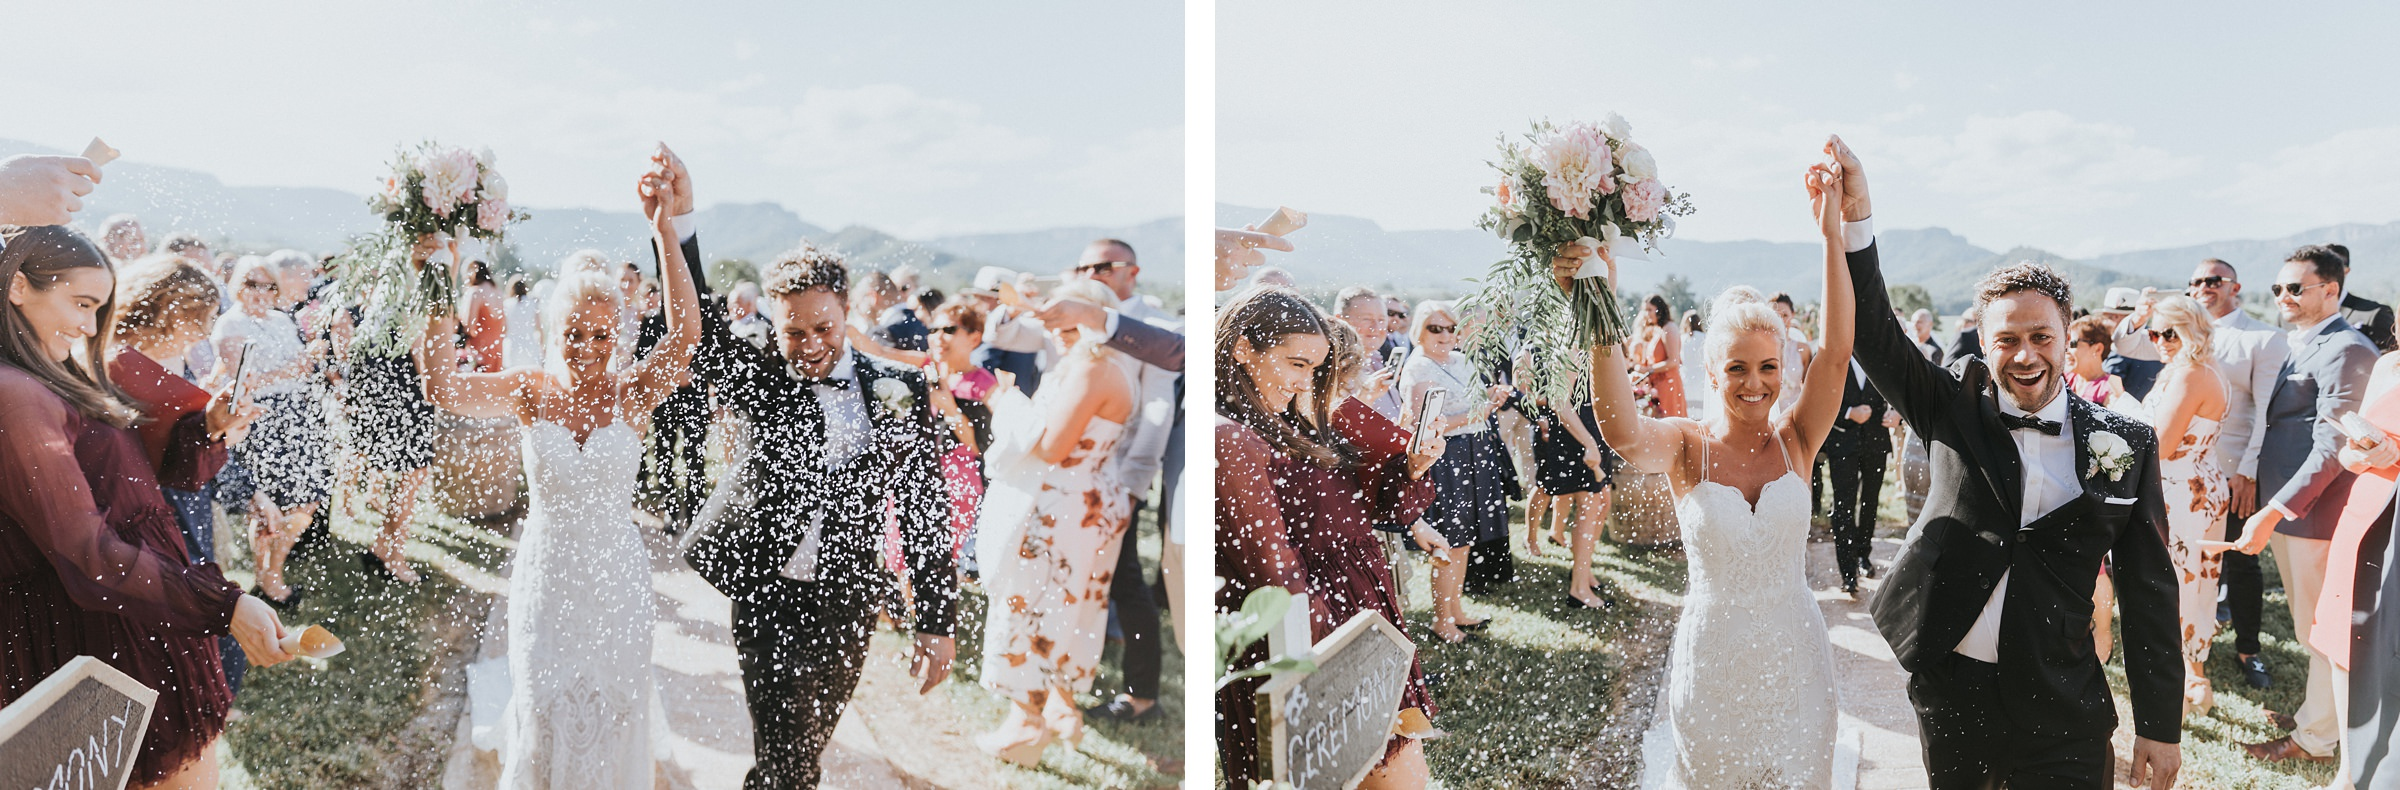 confetti being thrown at bride and groom at melross farm